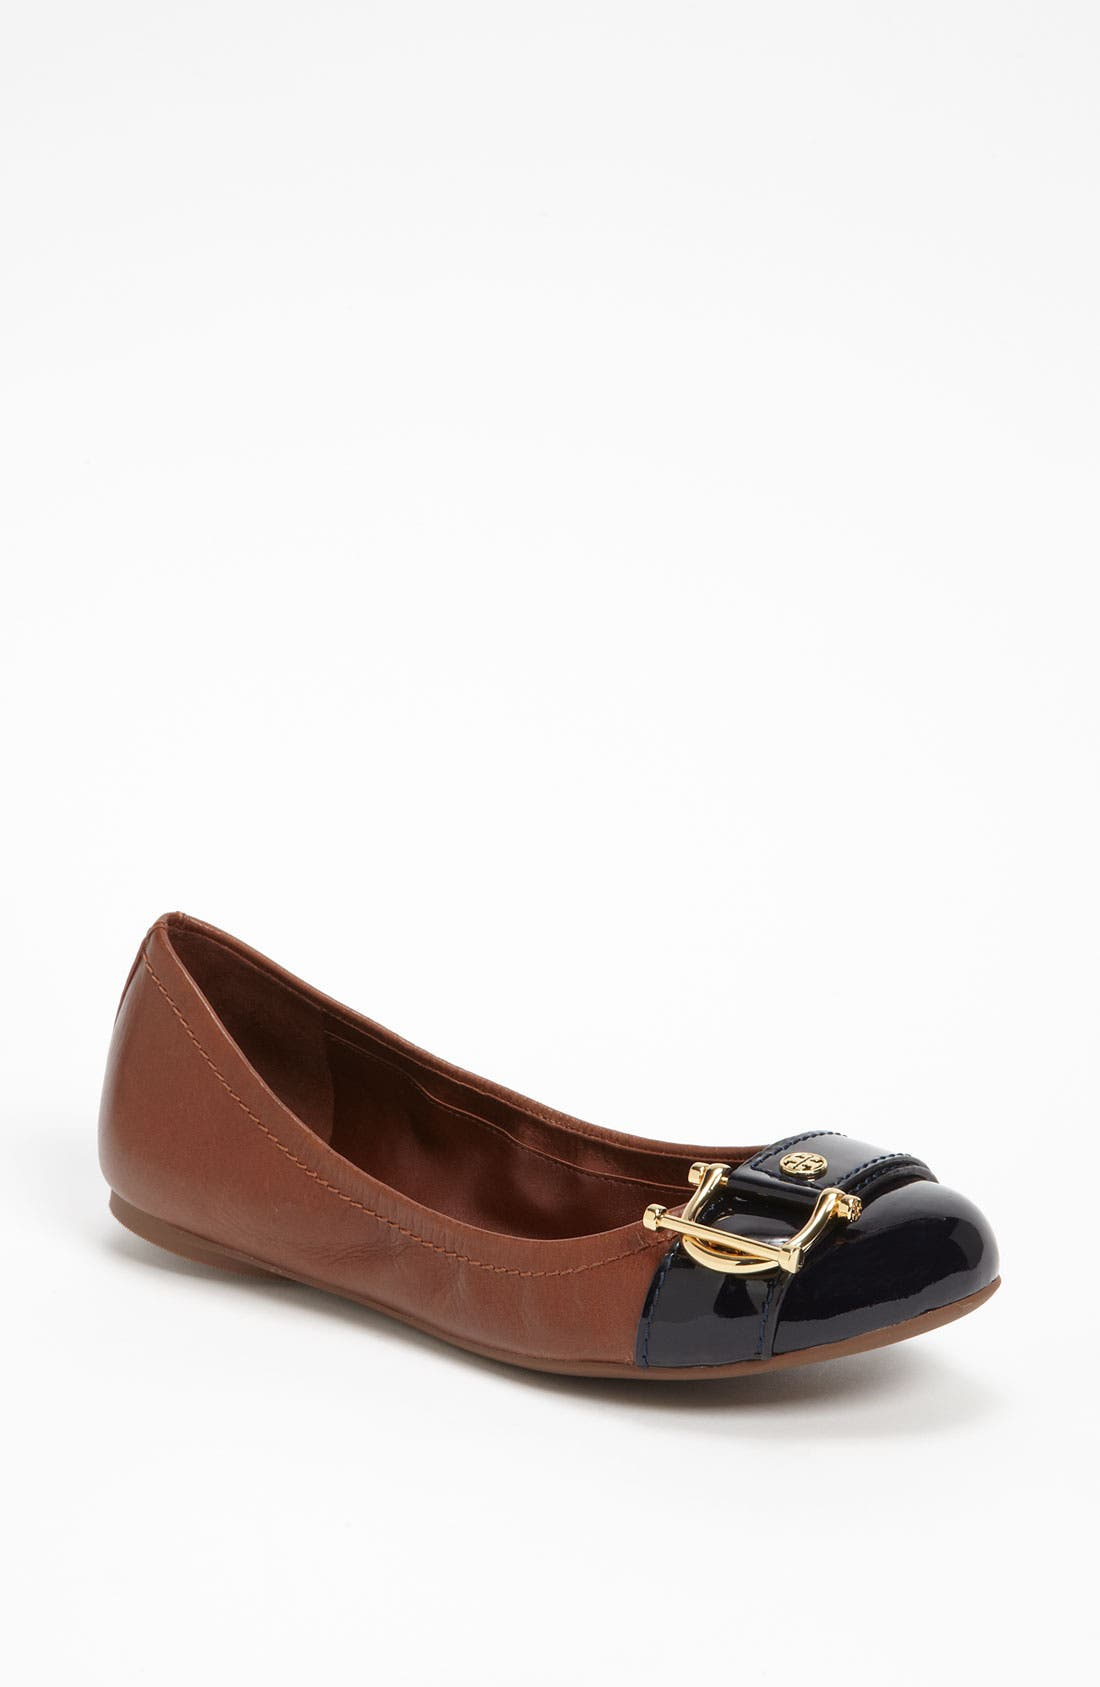 Alternate Image 1 Selected - Tory Burch 'Noel' Ballet Flat (Nordstrom Exclusive)